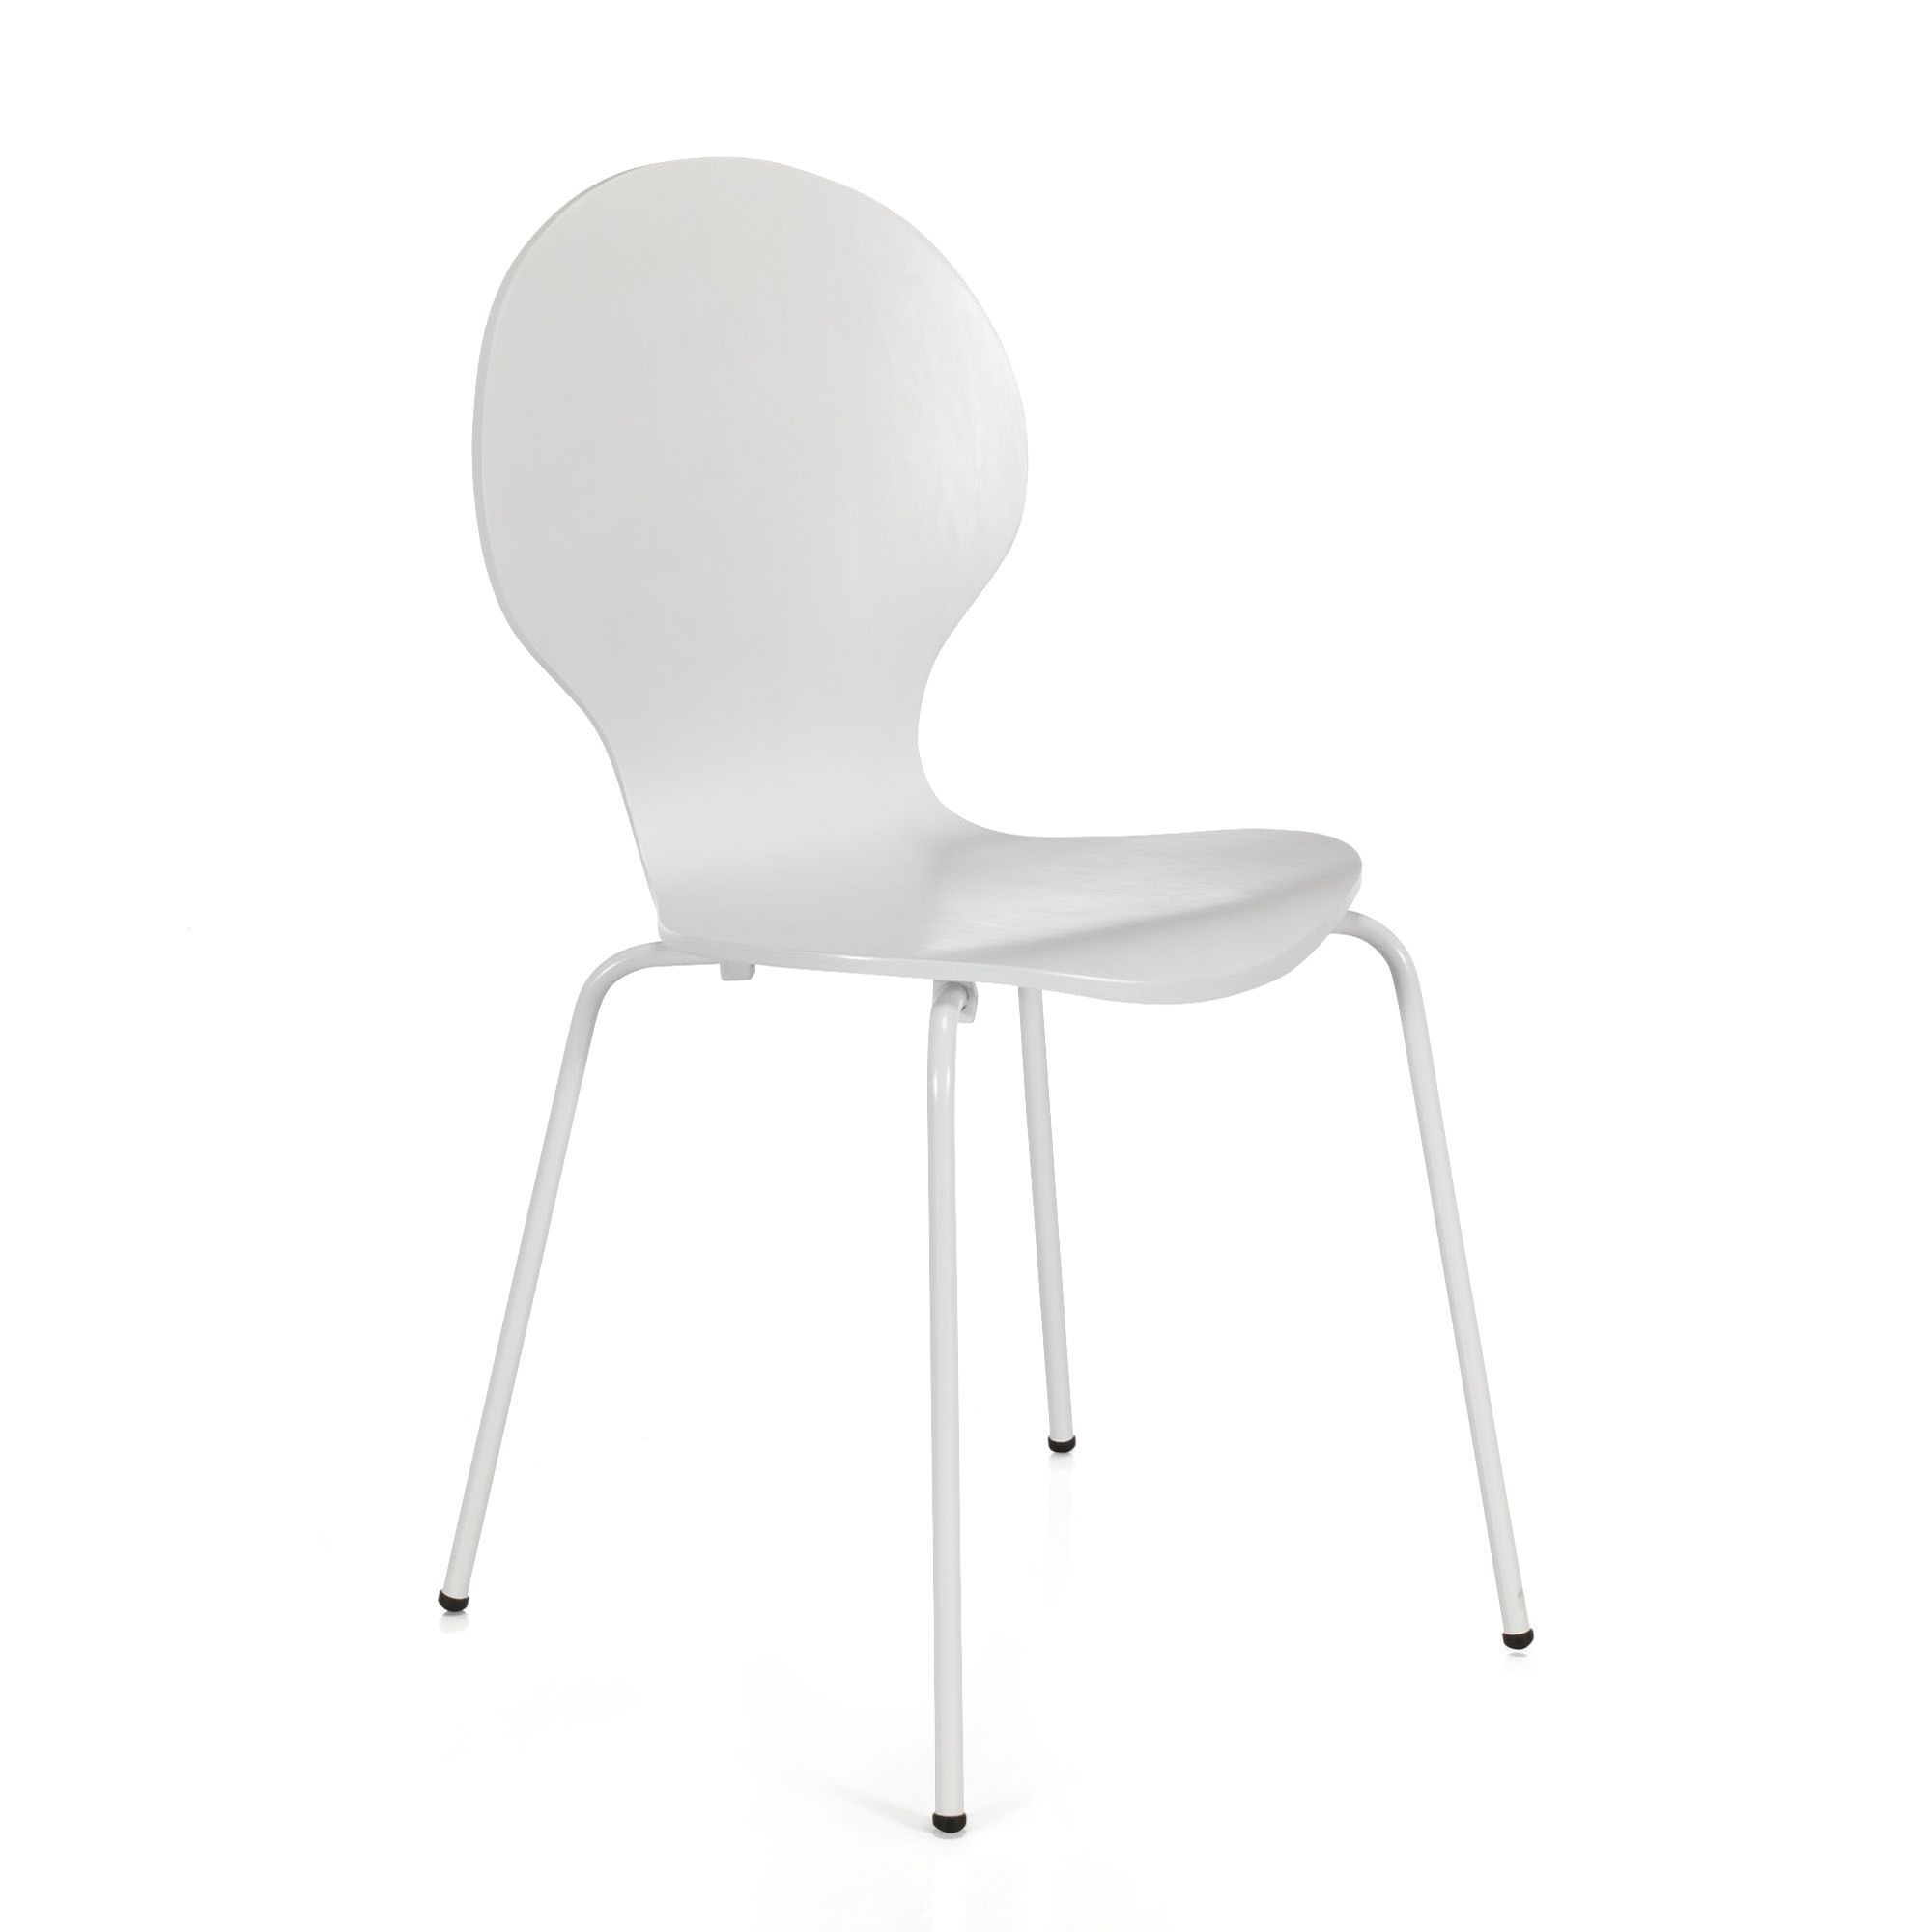 Blanche Chaise Maddy TablesSalonSalle Rétro Chaises KJTcF1l3